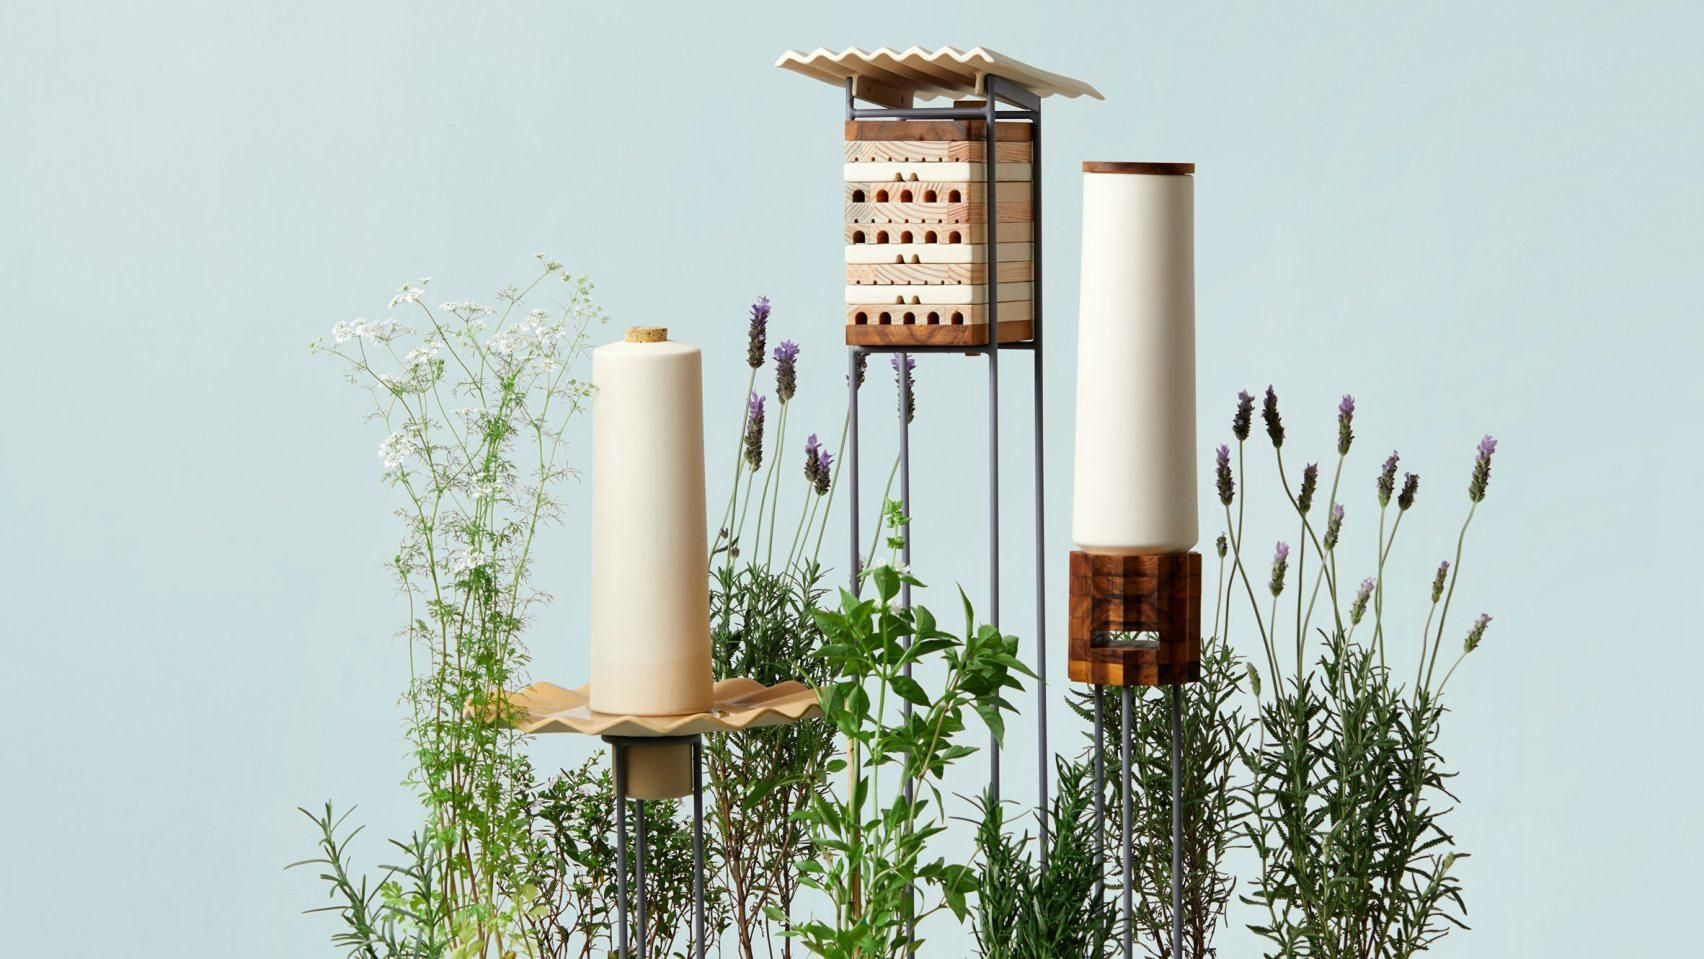 Shelters for city-dwelling bees